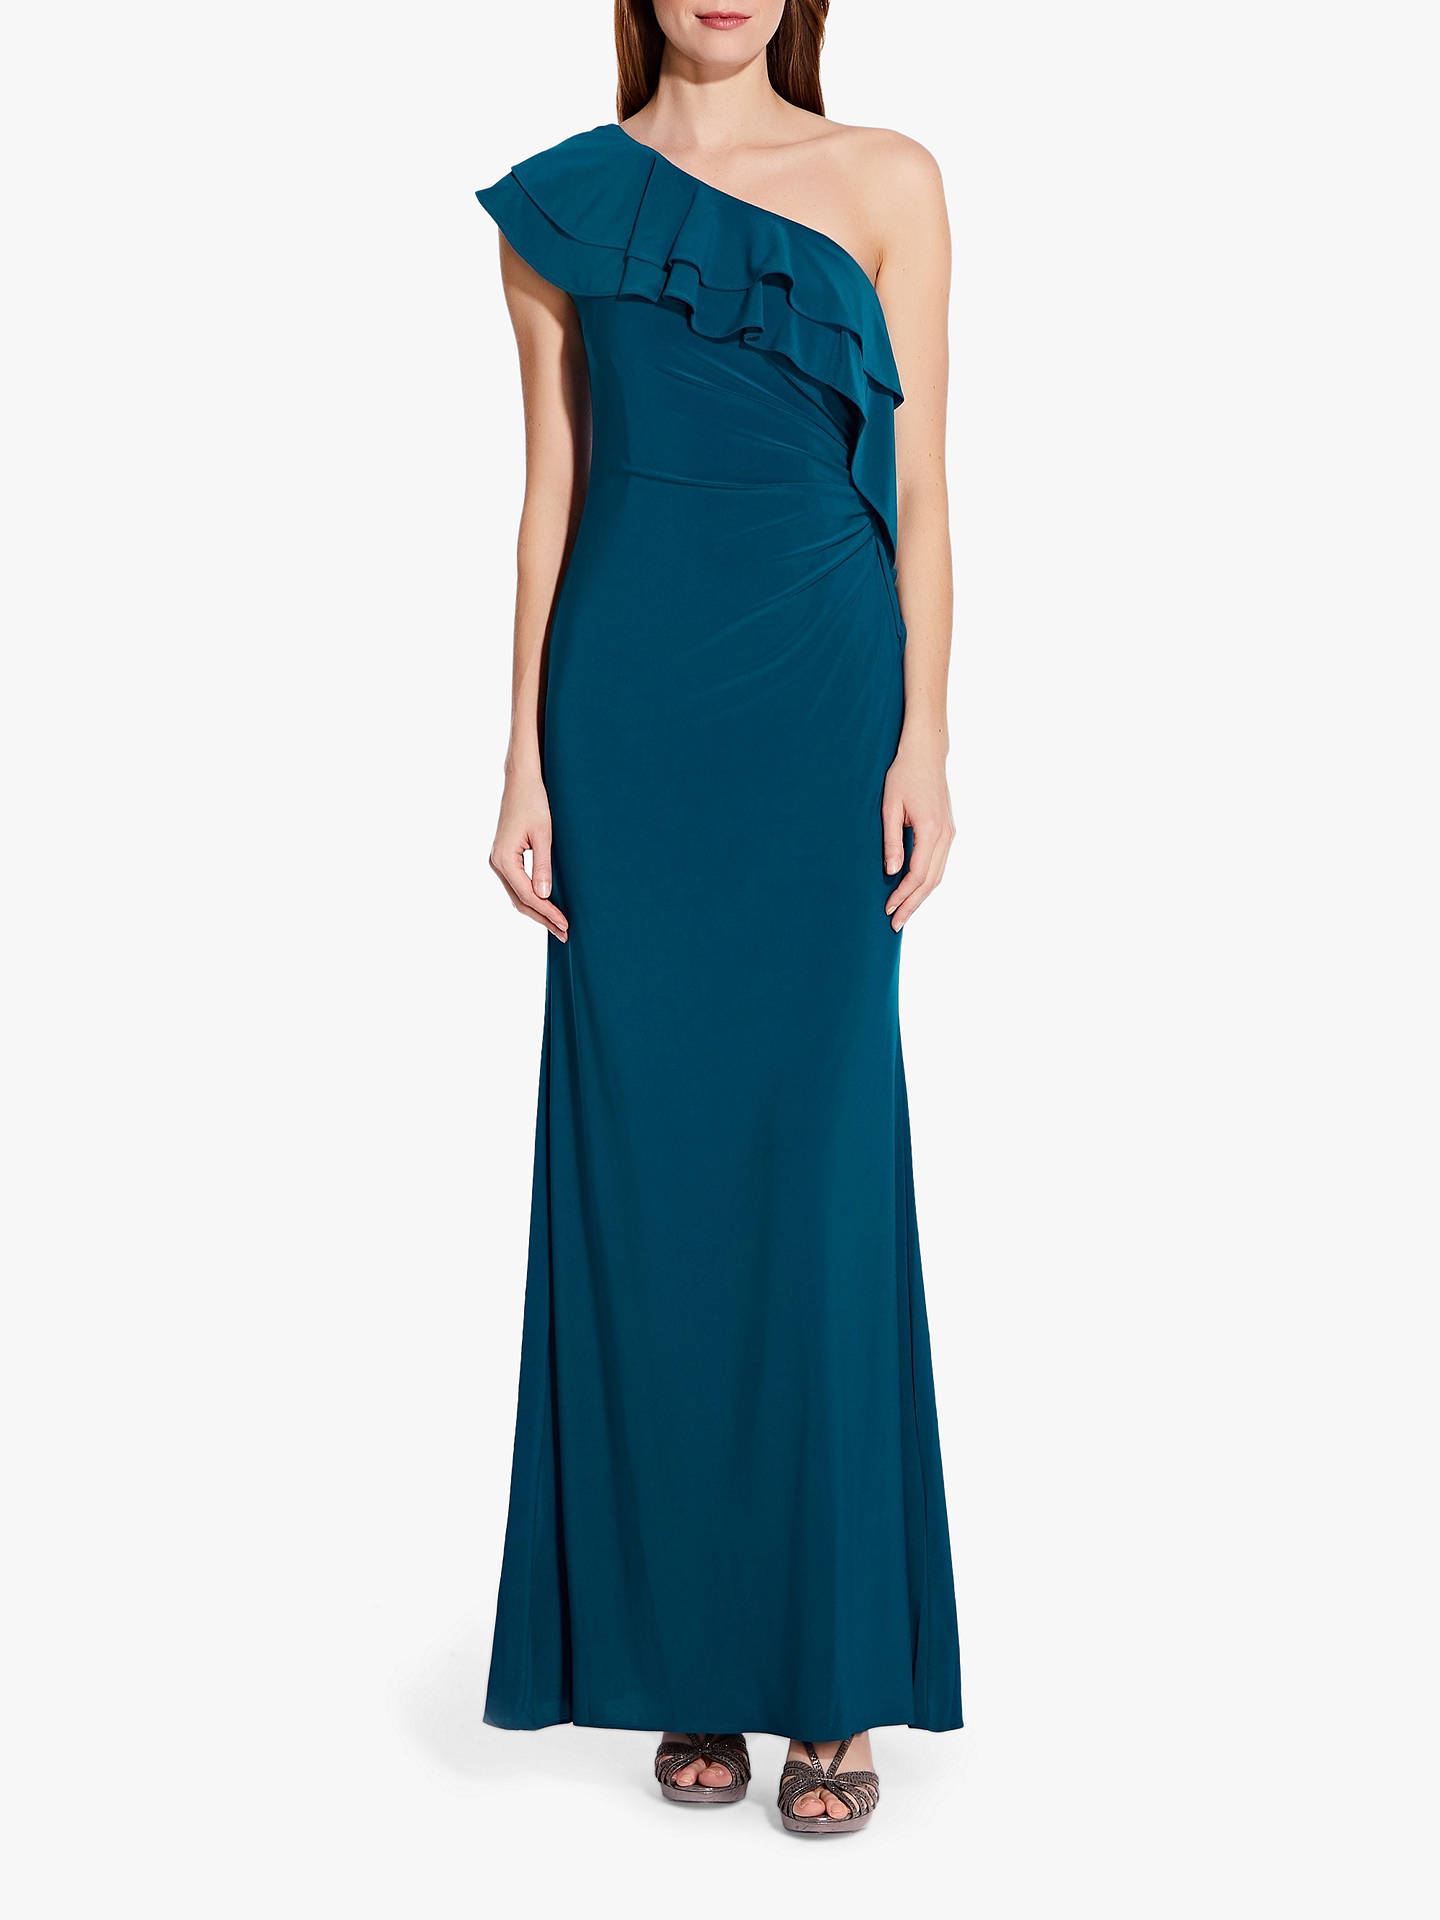 d8036db7e7aa Buy Adrianna Papell Ruffle Jersey Dress, Teal Crush, 8 Online at  johnlewis.com ...